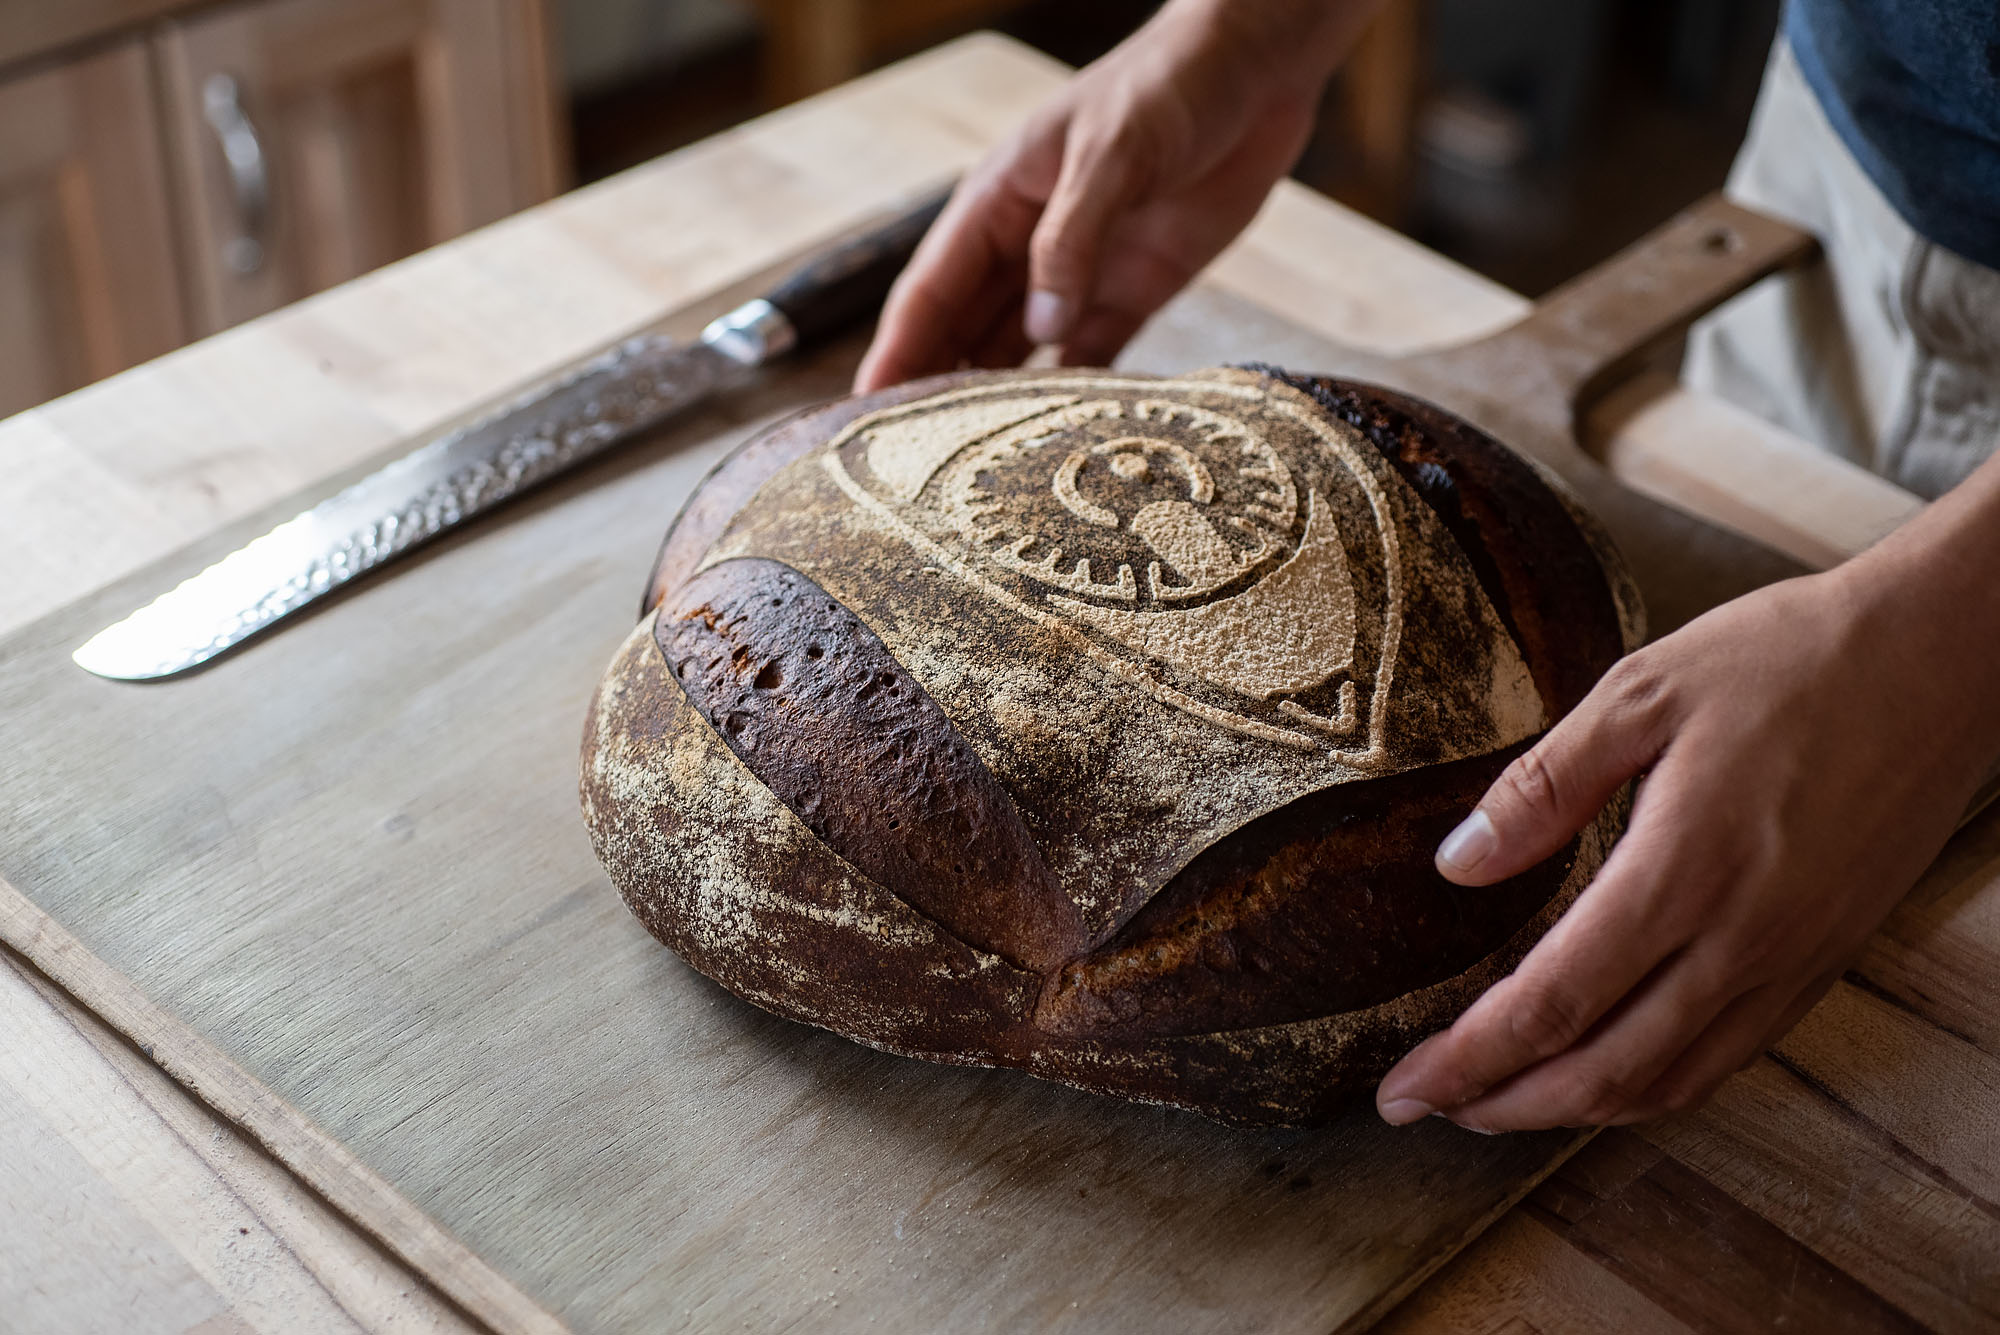 A dark loaf of bread fresh from the oven.